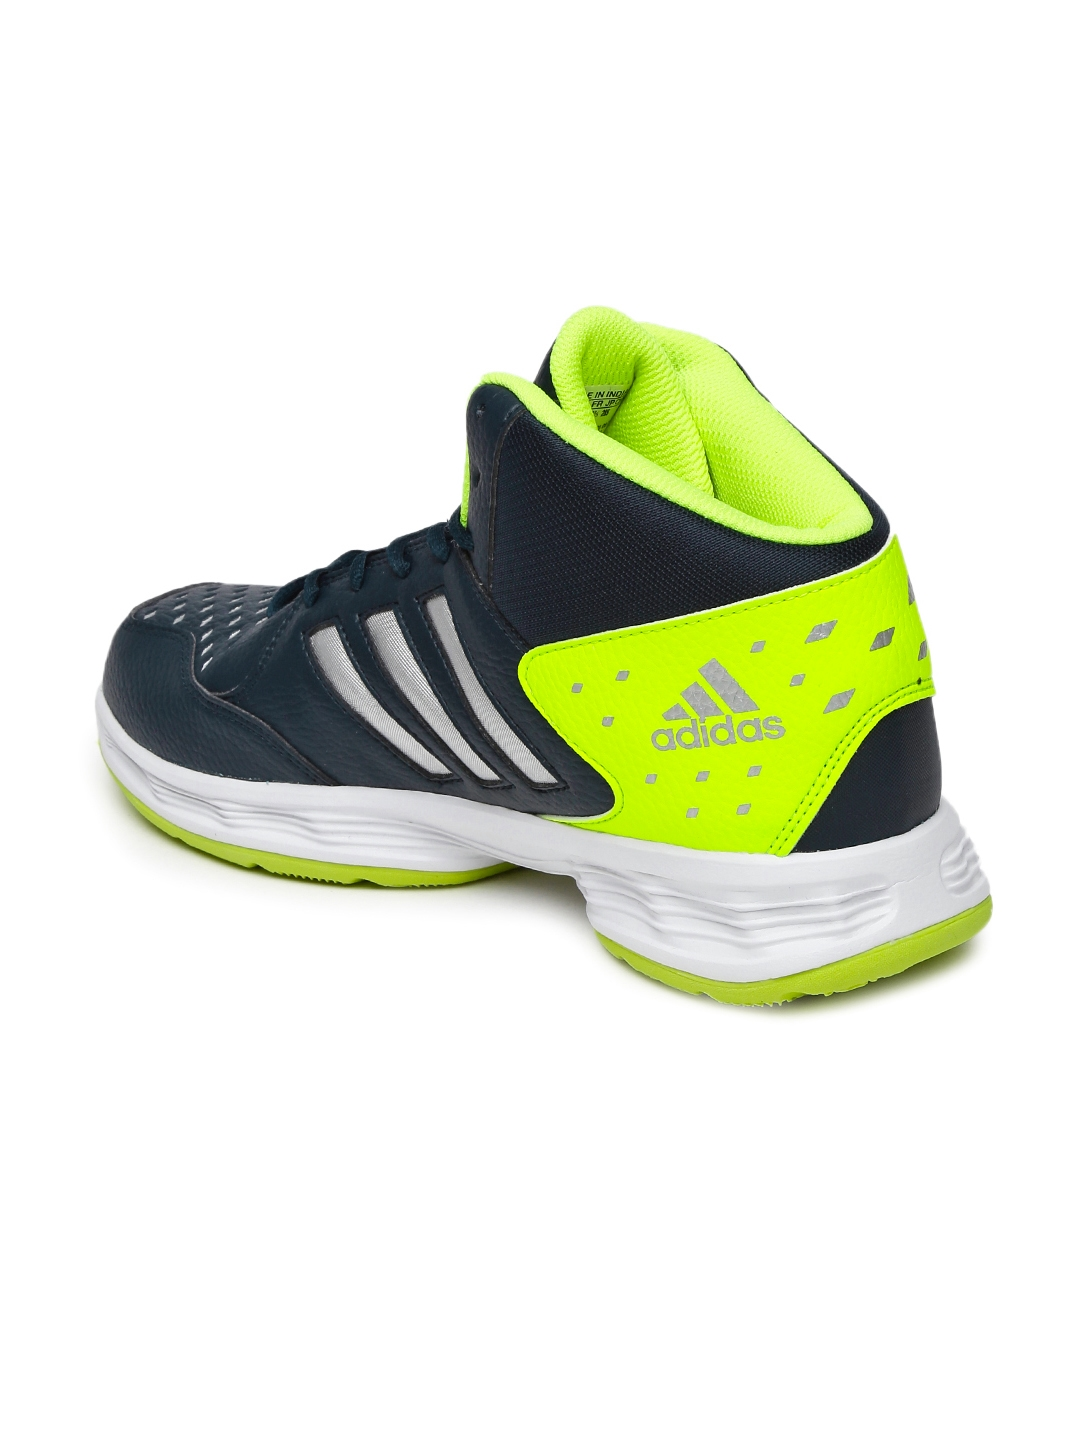 dc1db486026d ADIDAS Men Navy and Fluorescent Green Mid-Top Basecut 16 Basketball Shoes